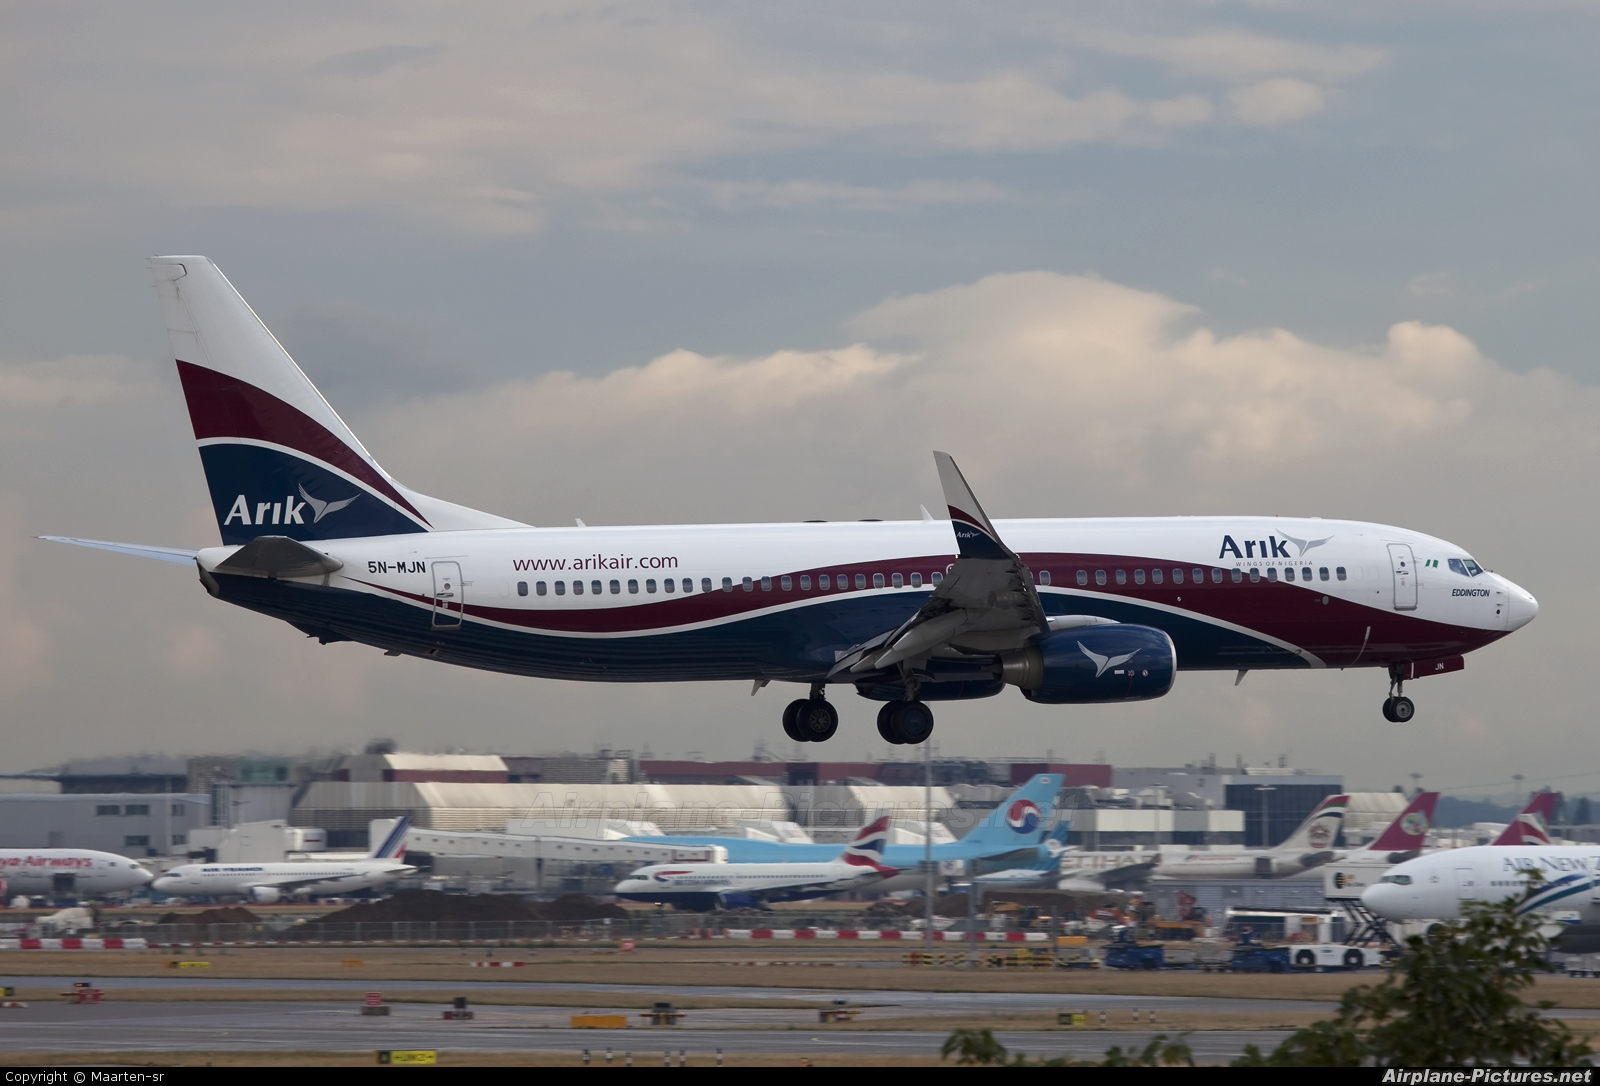 Arik Air 5N-MJN aircraft at London - Heathrow